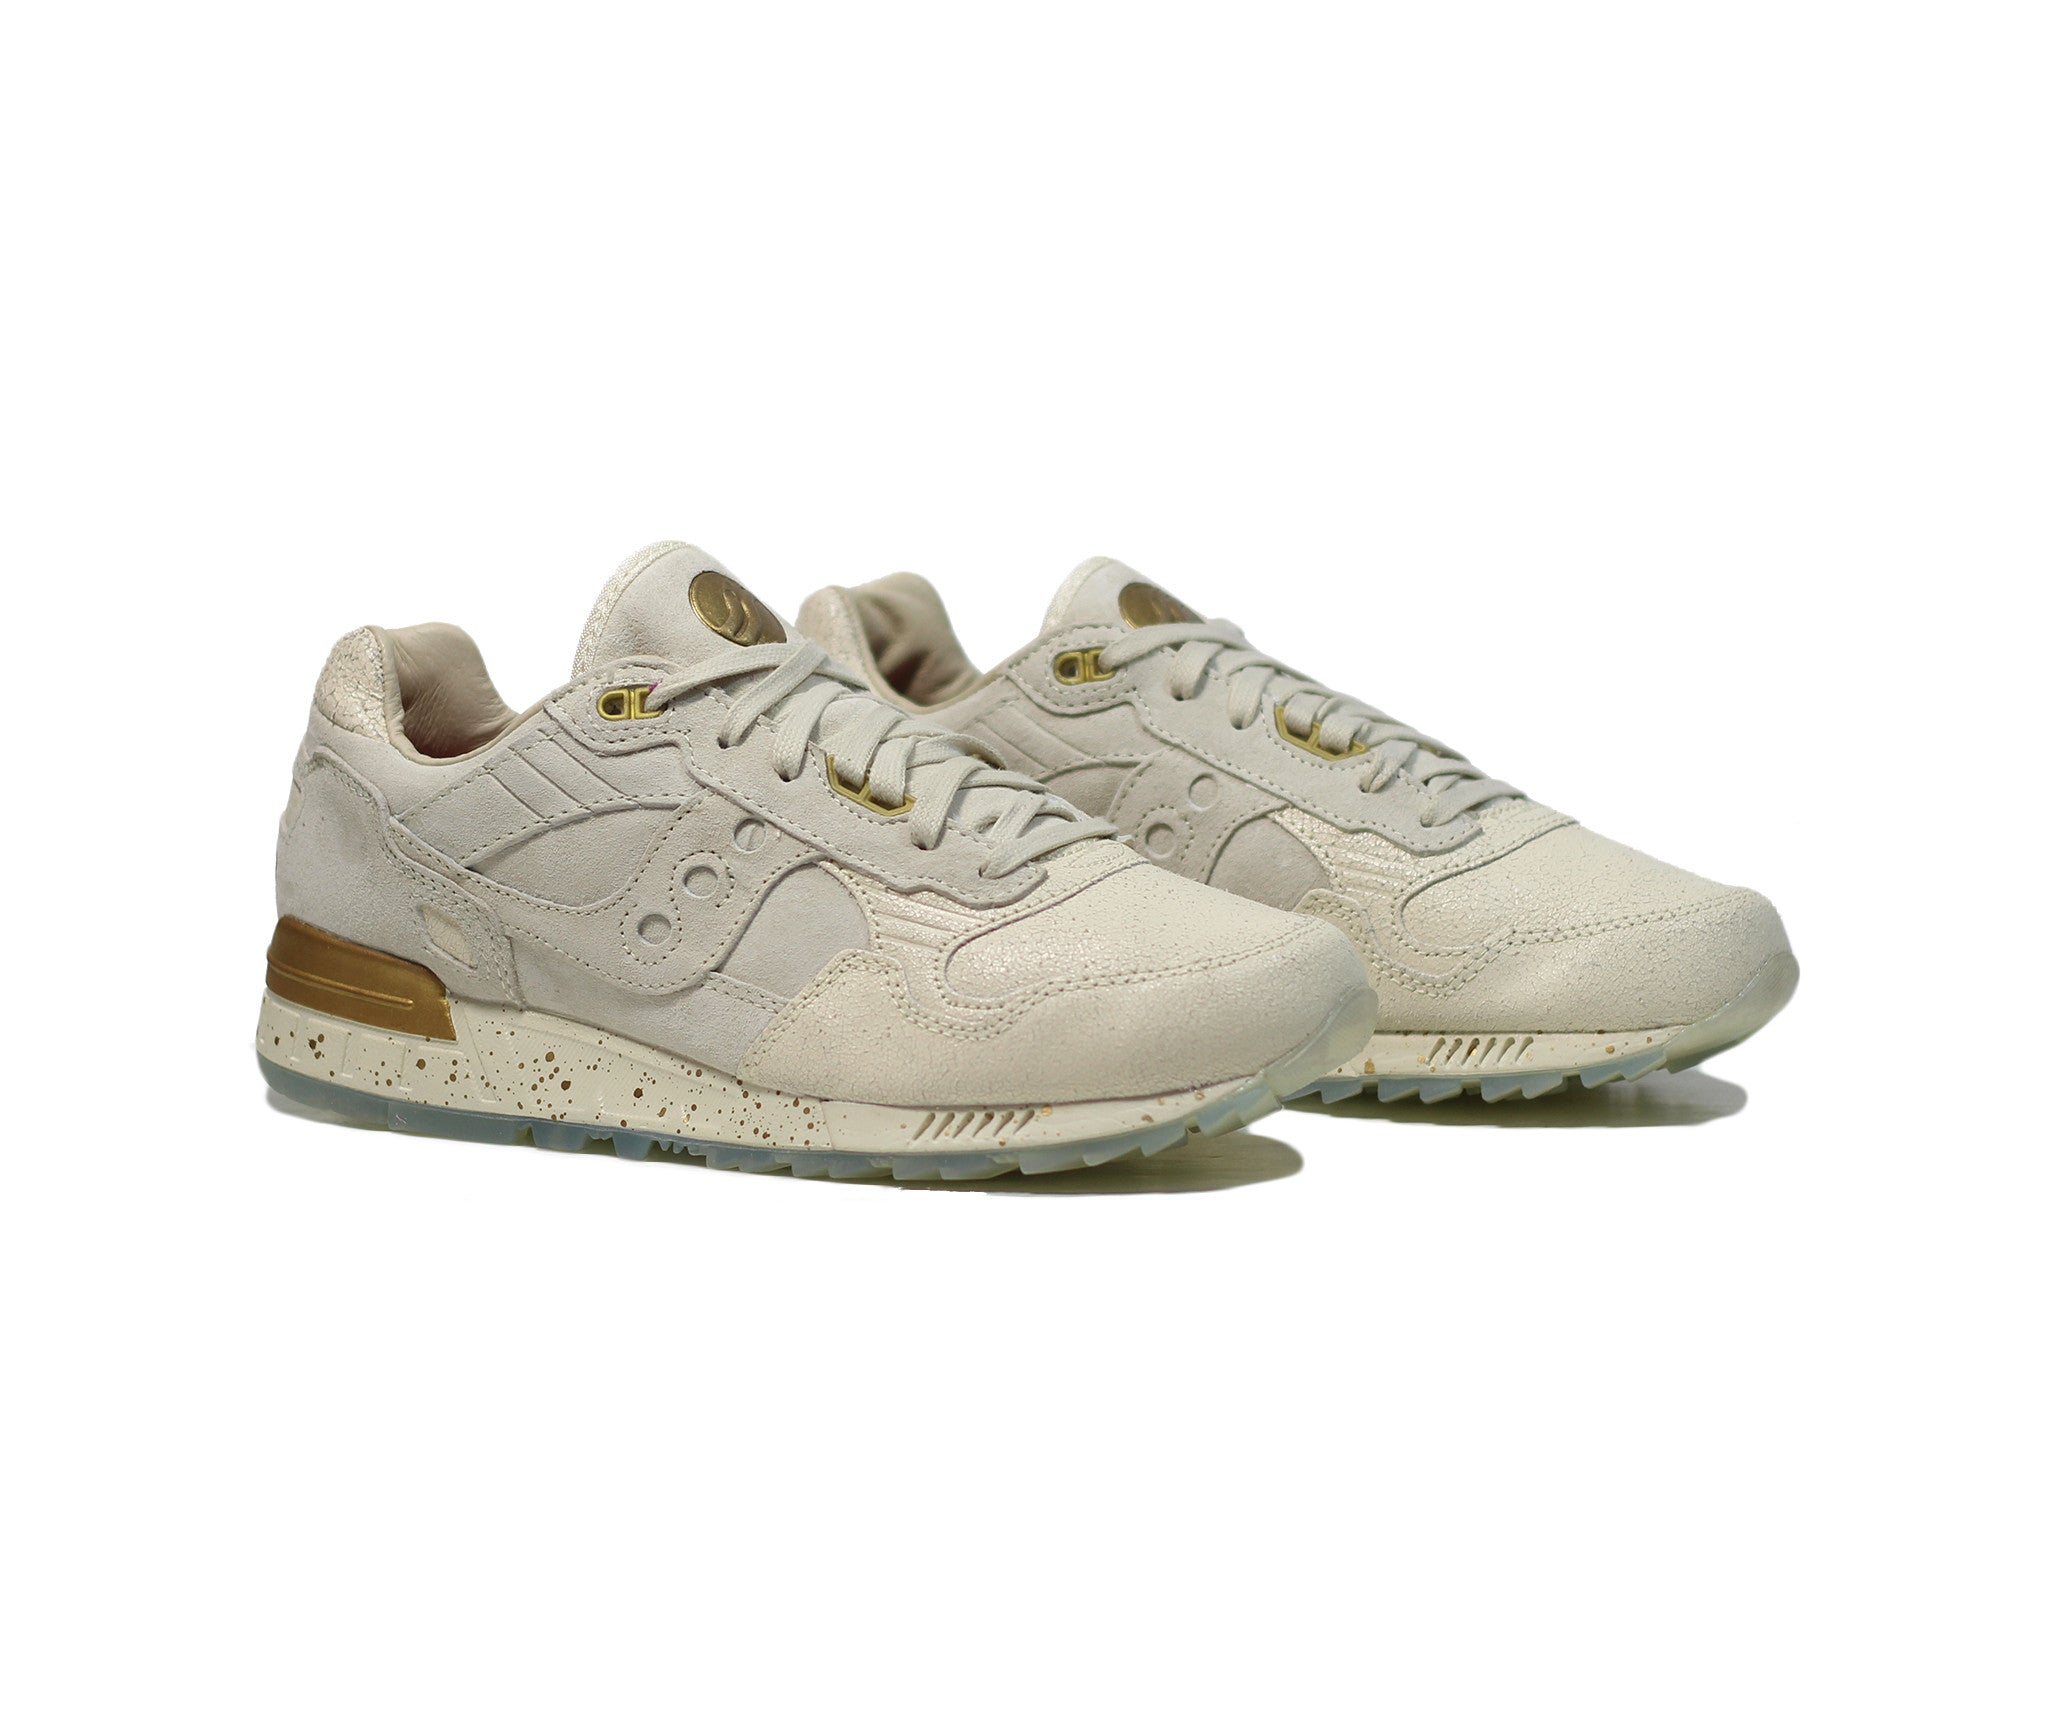 official photos 988c9 44aad Saucony Shadow 5000 - Off White